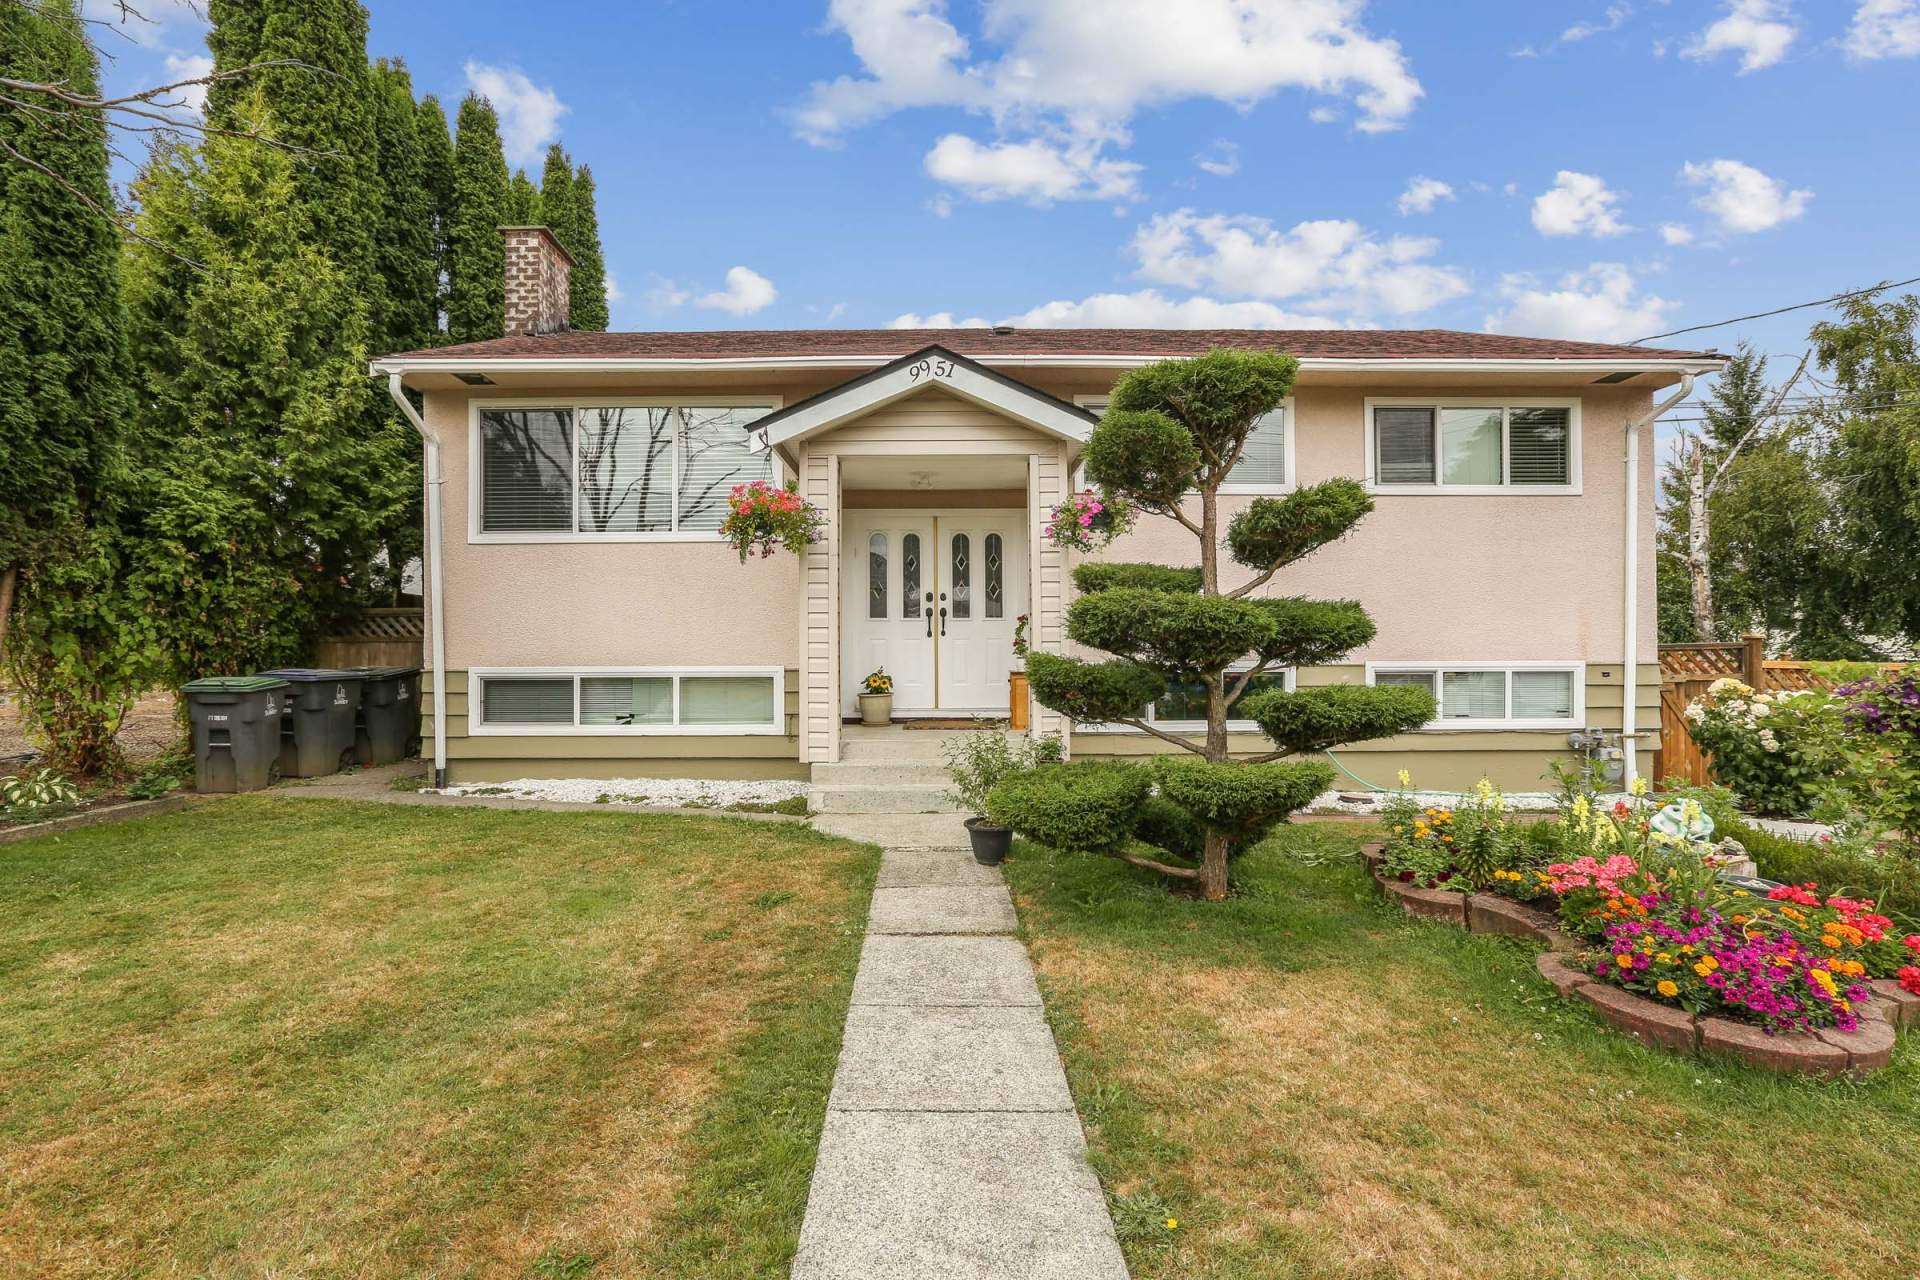 Cedar Hills House for sale at 9951 124A St